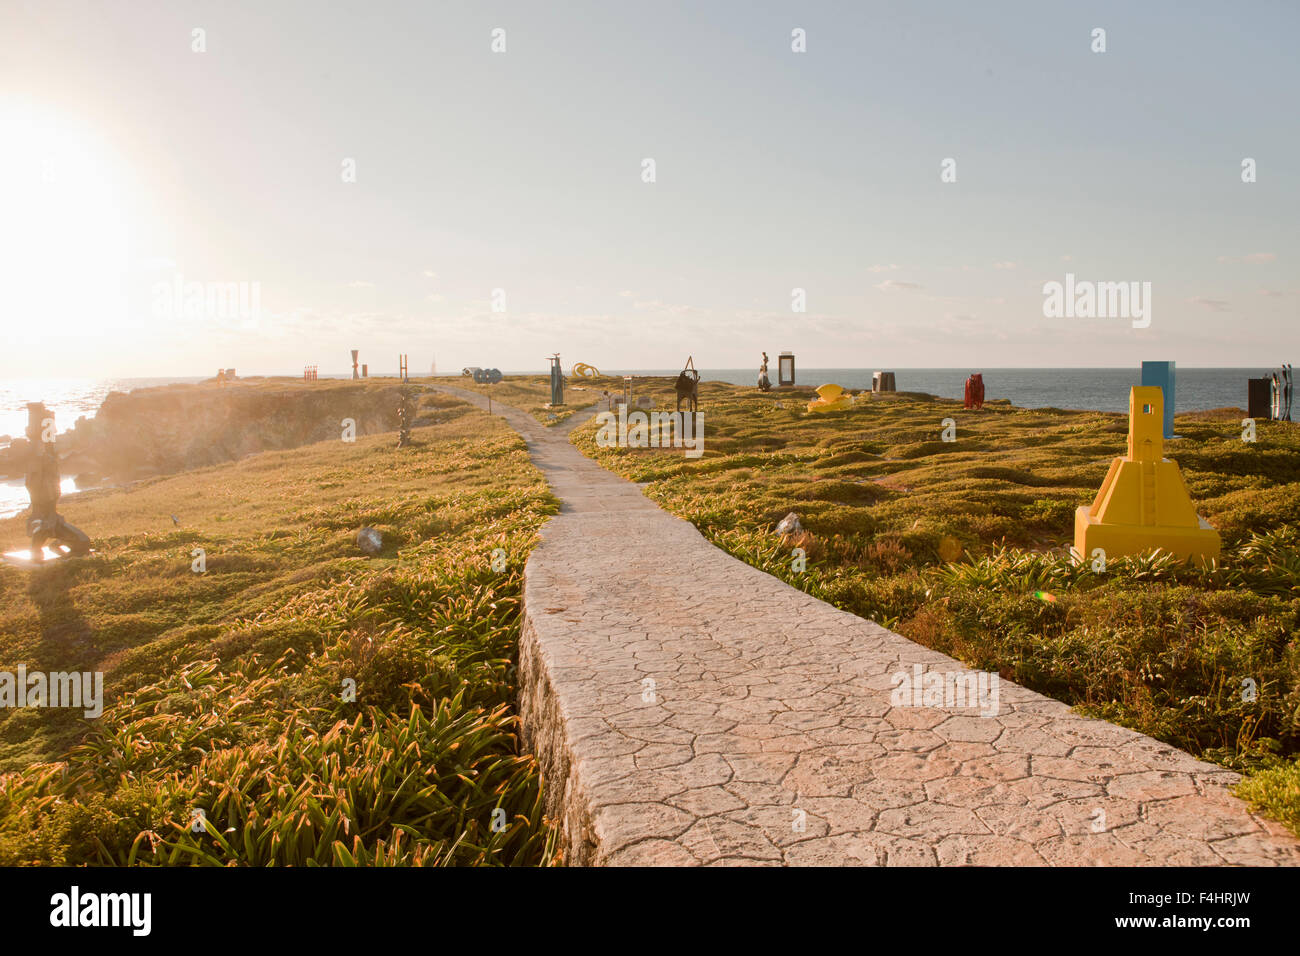 The Sculpture Park at Sunrise. Punta Sur, Isla Mujeres, Quintana Roo, Mexico. - Stock Image